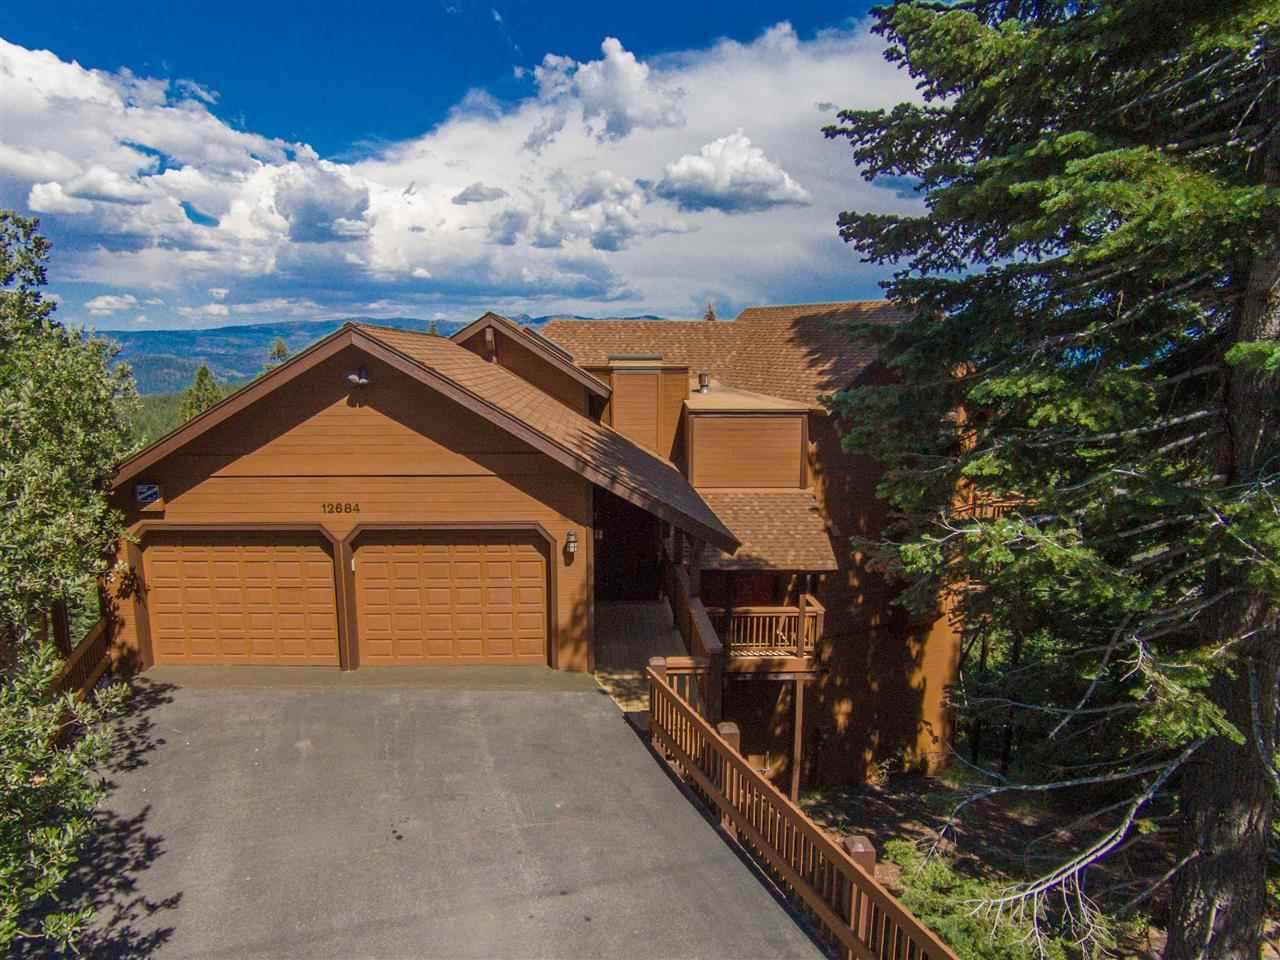 Single Family Home for Active at 12684 Muhlebach Way Truckee, California 96161 United States